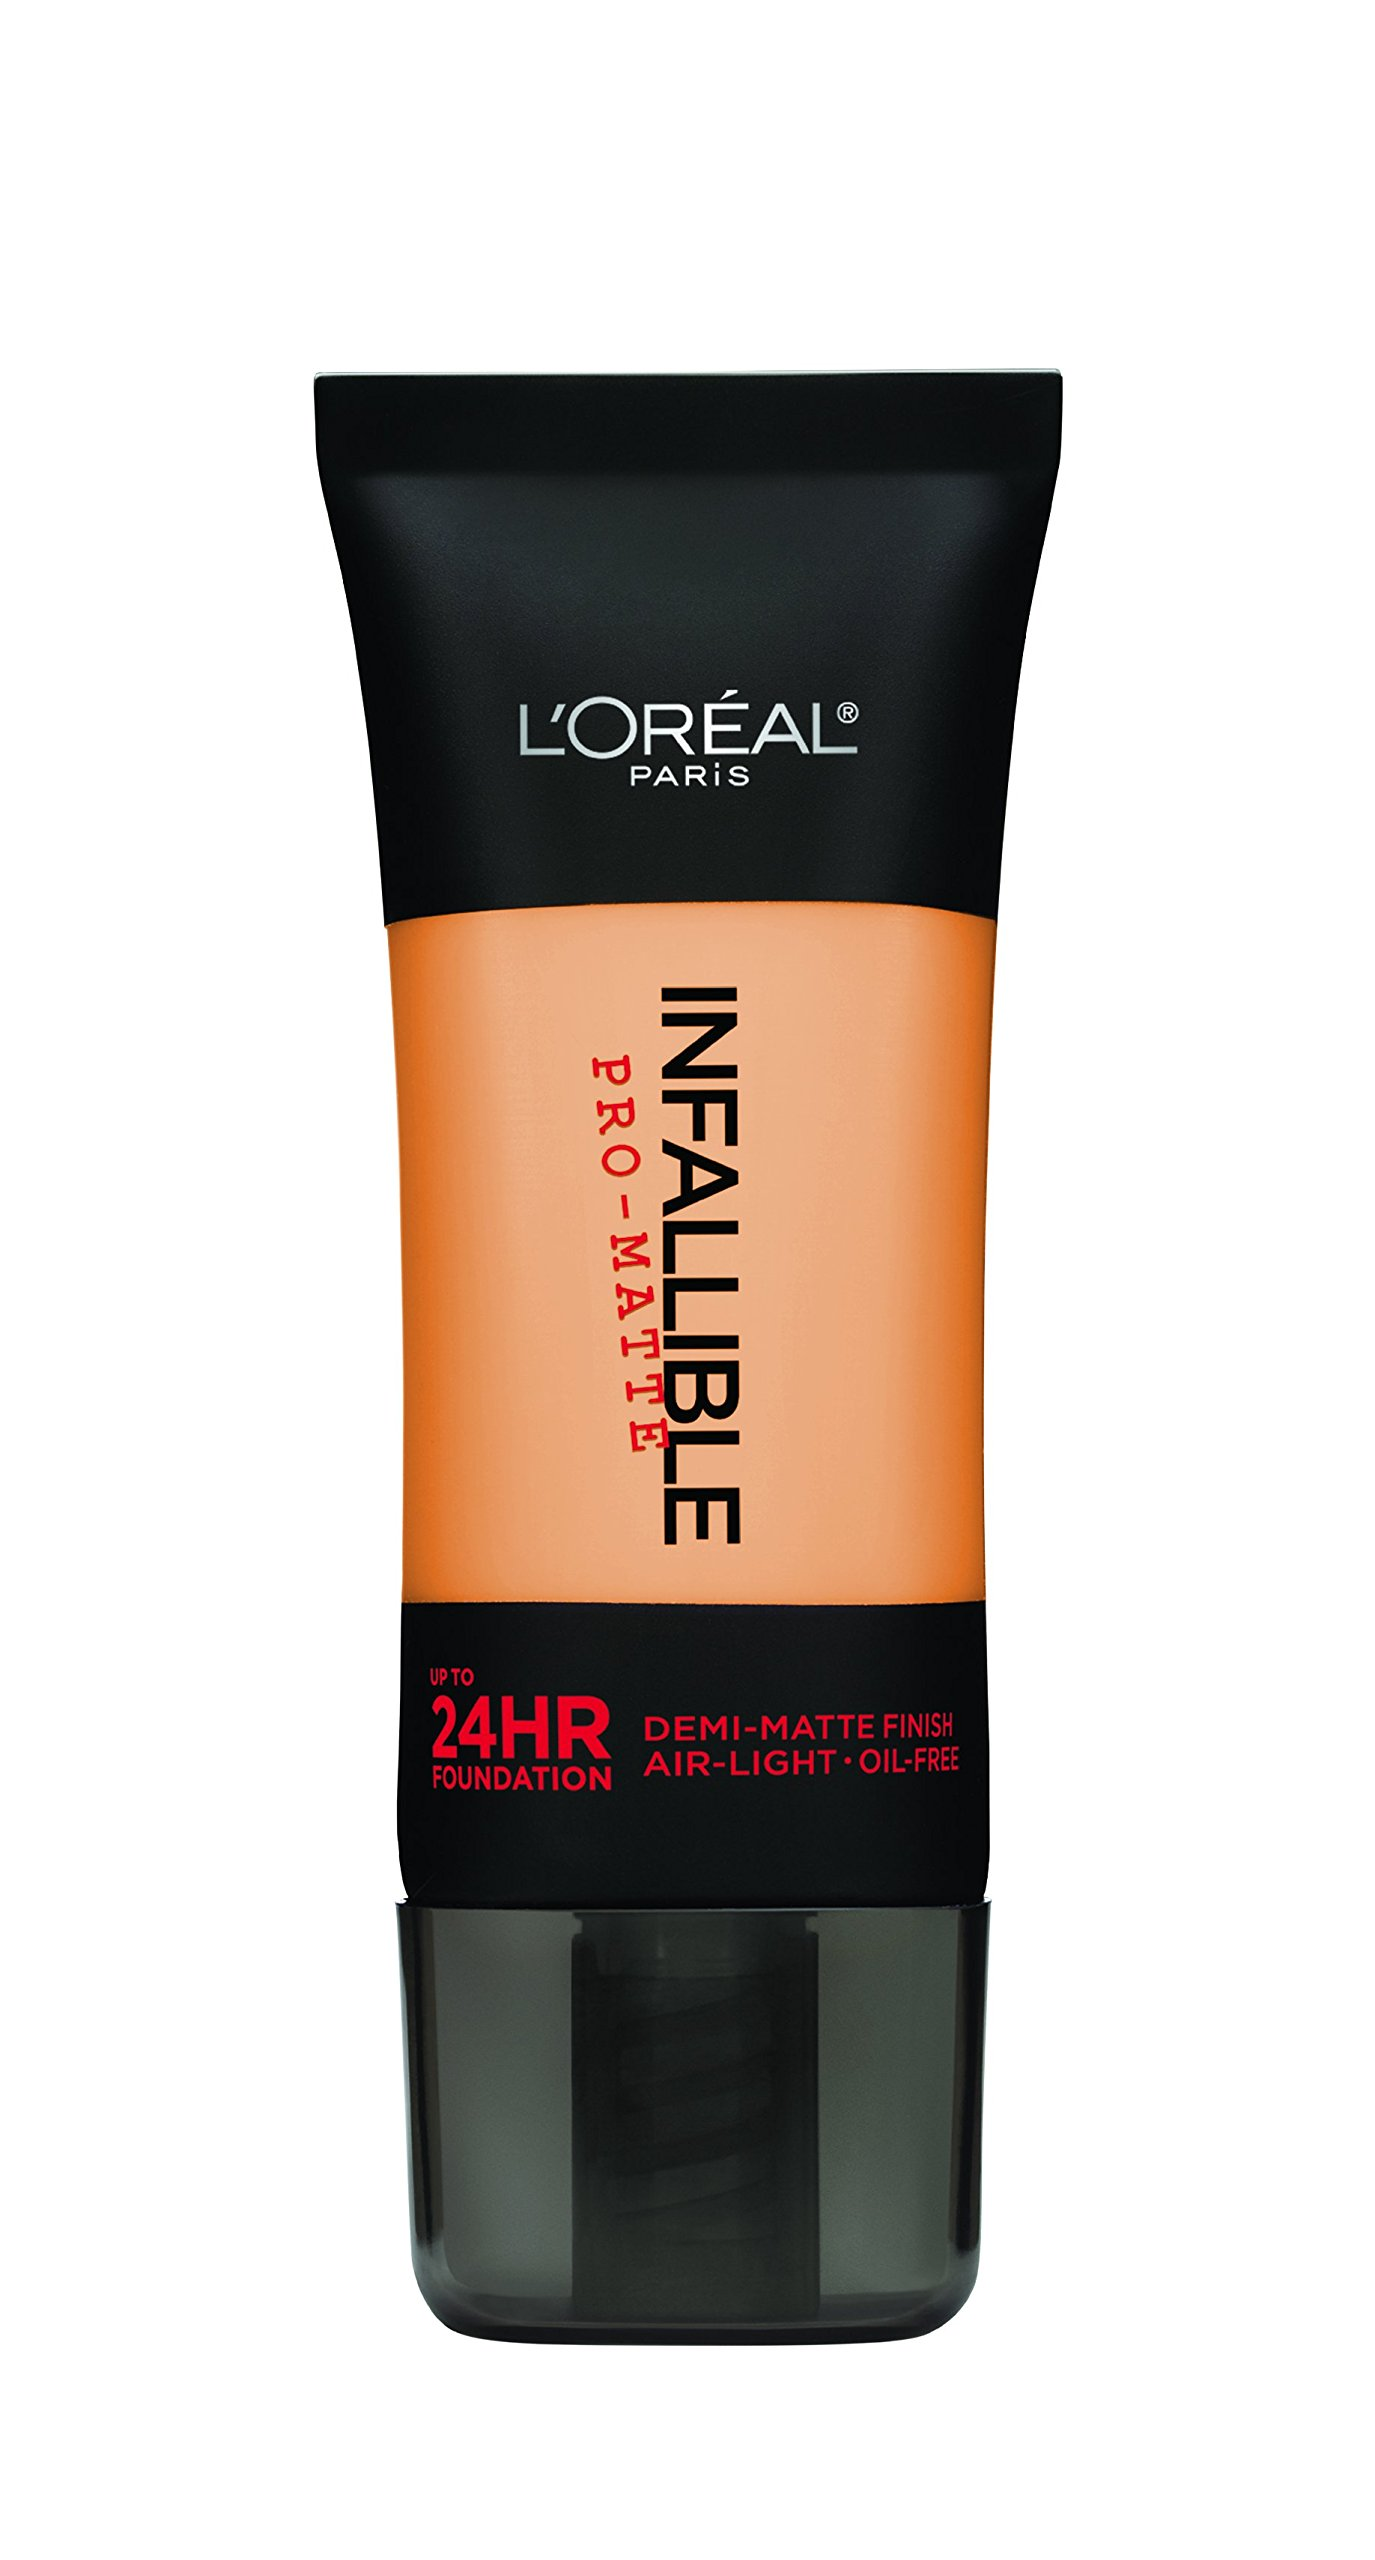 L'Oreal Paris Infallible Pro-Matte Foundation Makeup, 102 Shell Beige, 1 fl. oz.